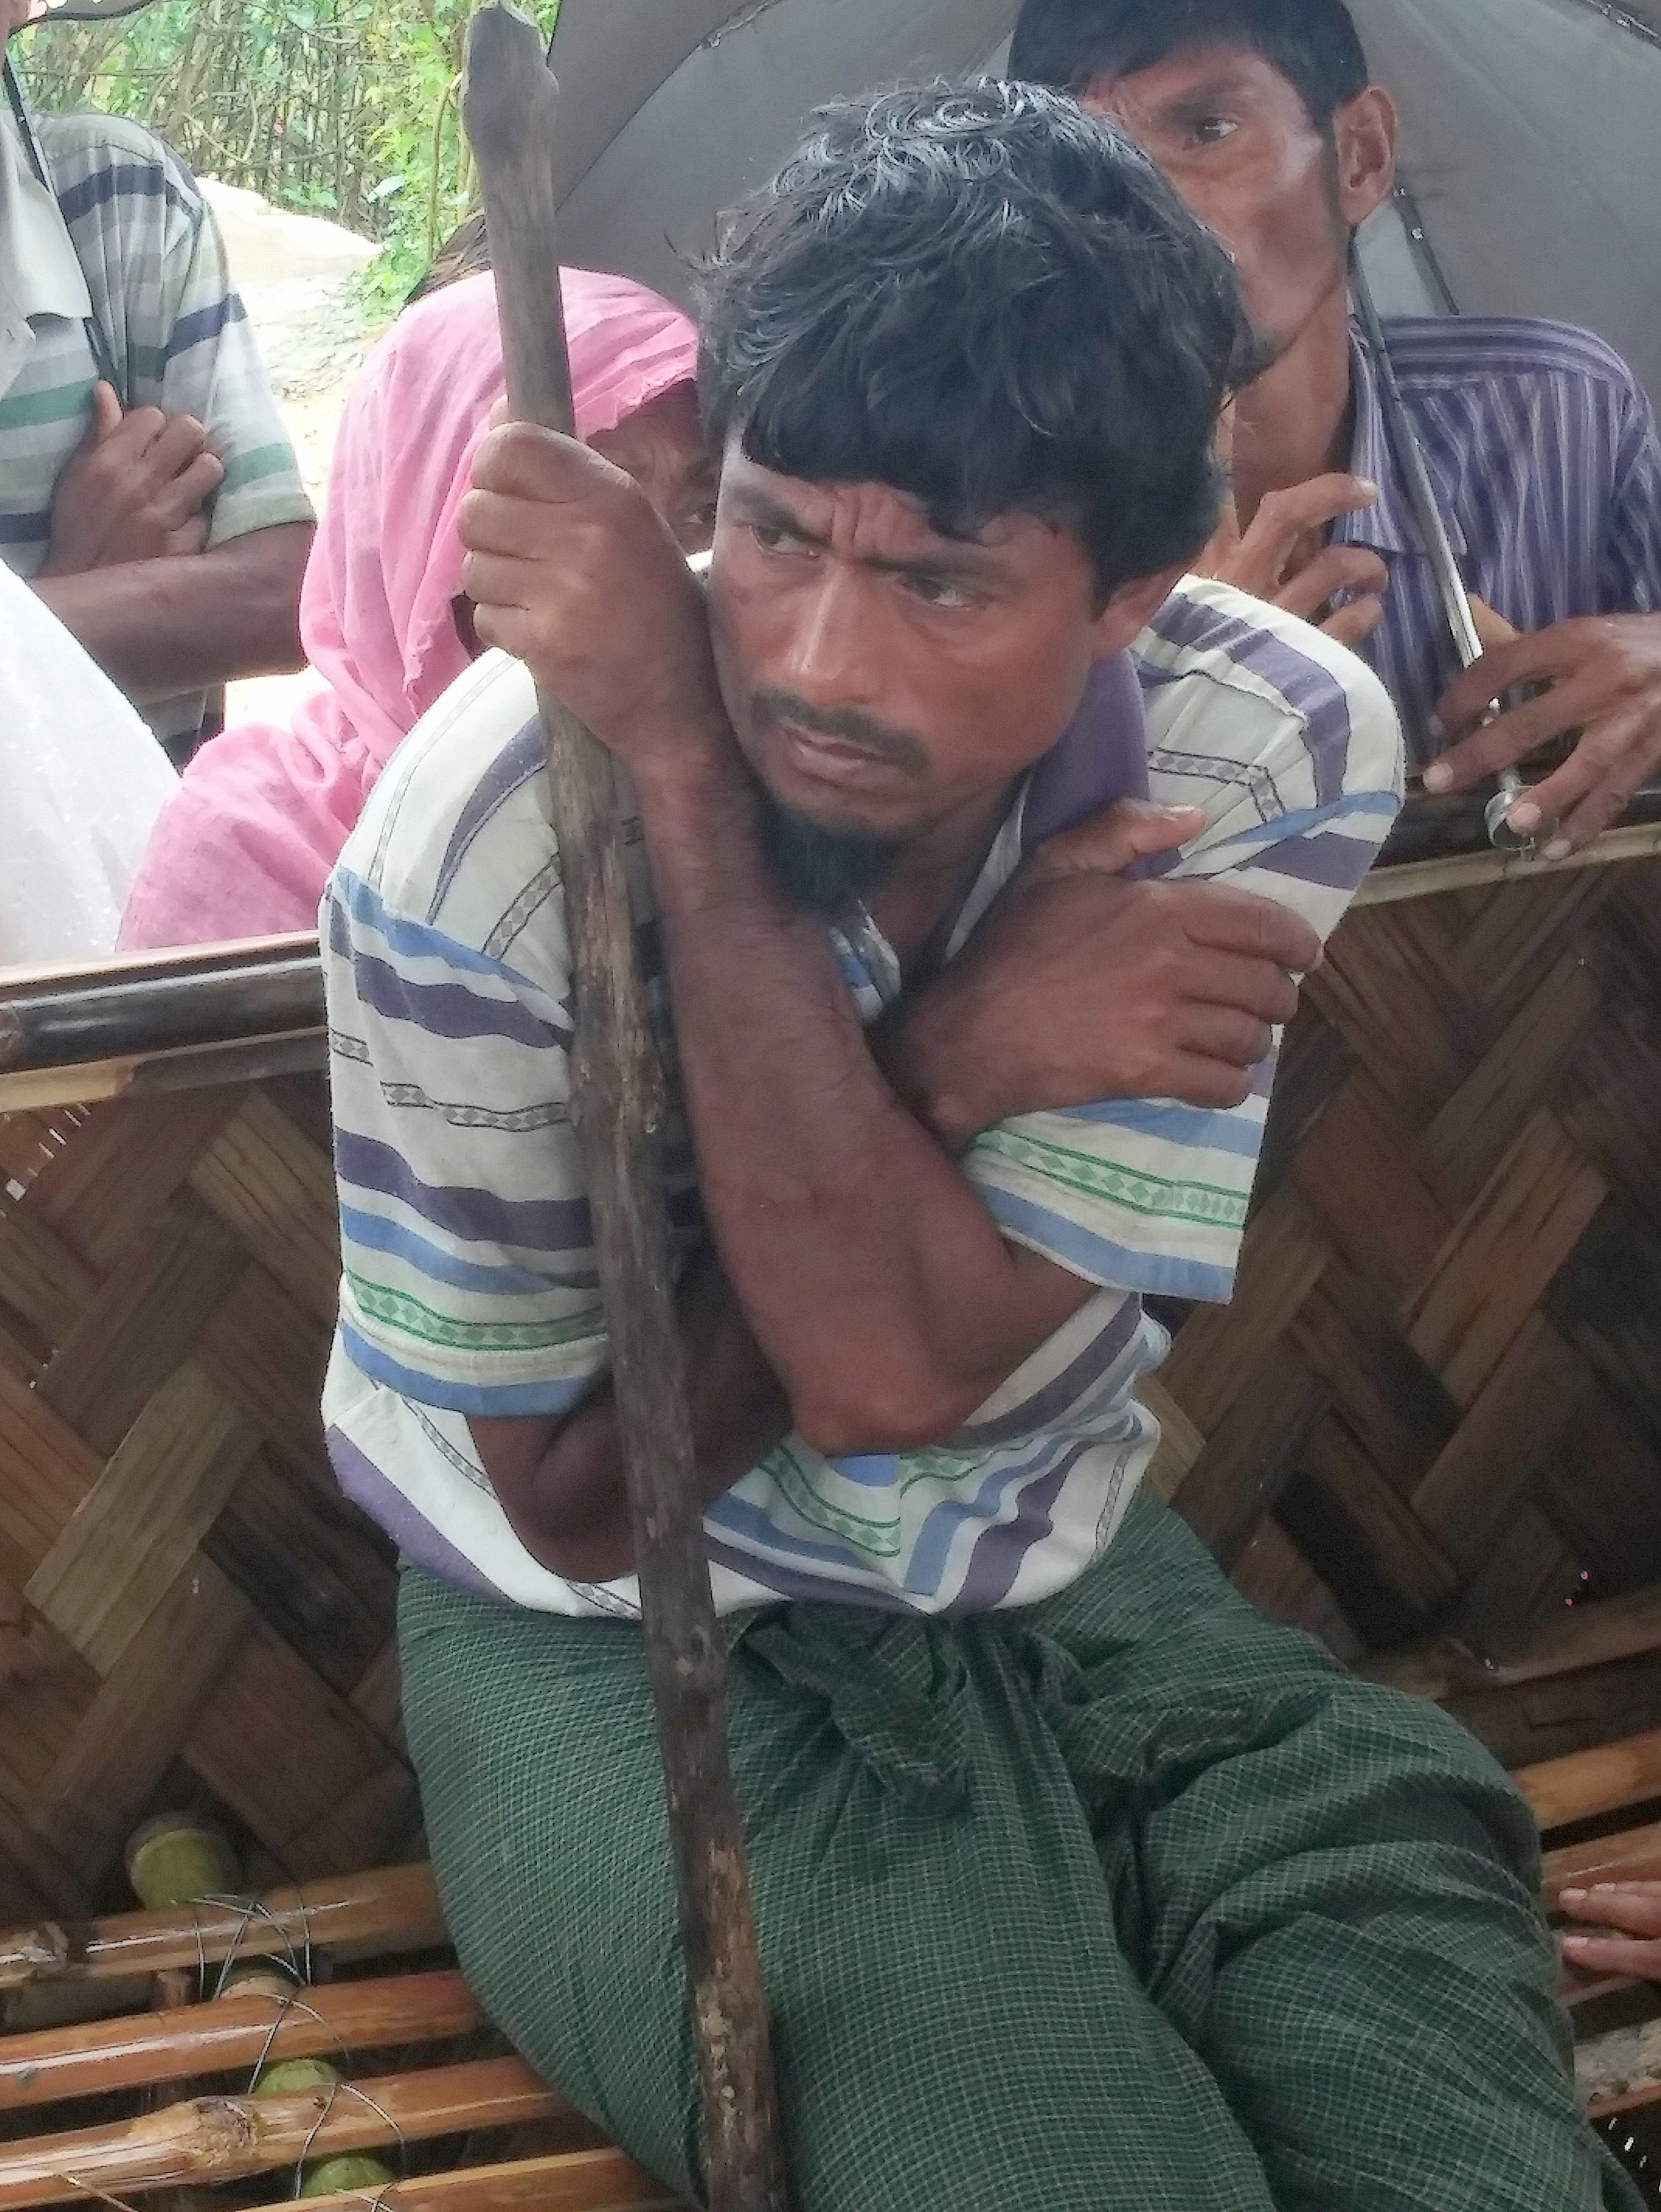 RI spoke with recently arrived Rohingya with fresh wounds from gunshots, stab wounds, and burns. This man told RI he lost his son to a shrapnel wound and has been treated for shrapnel in his own leg.